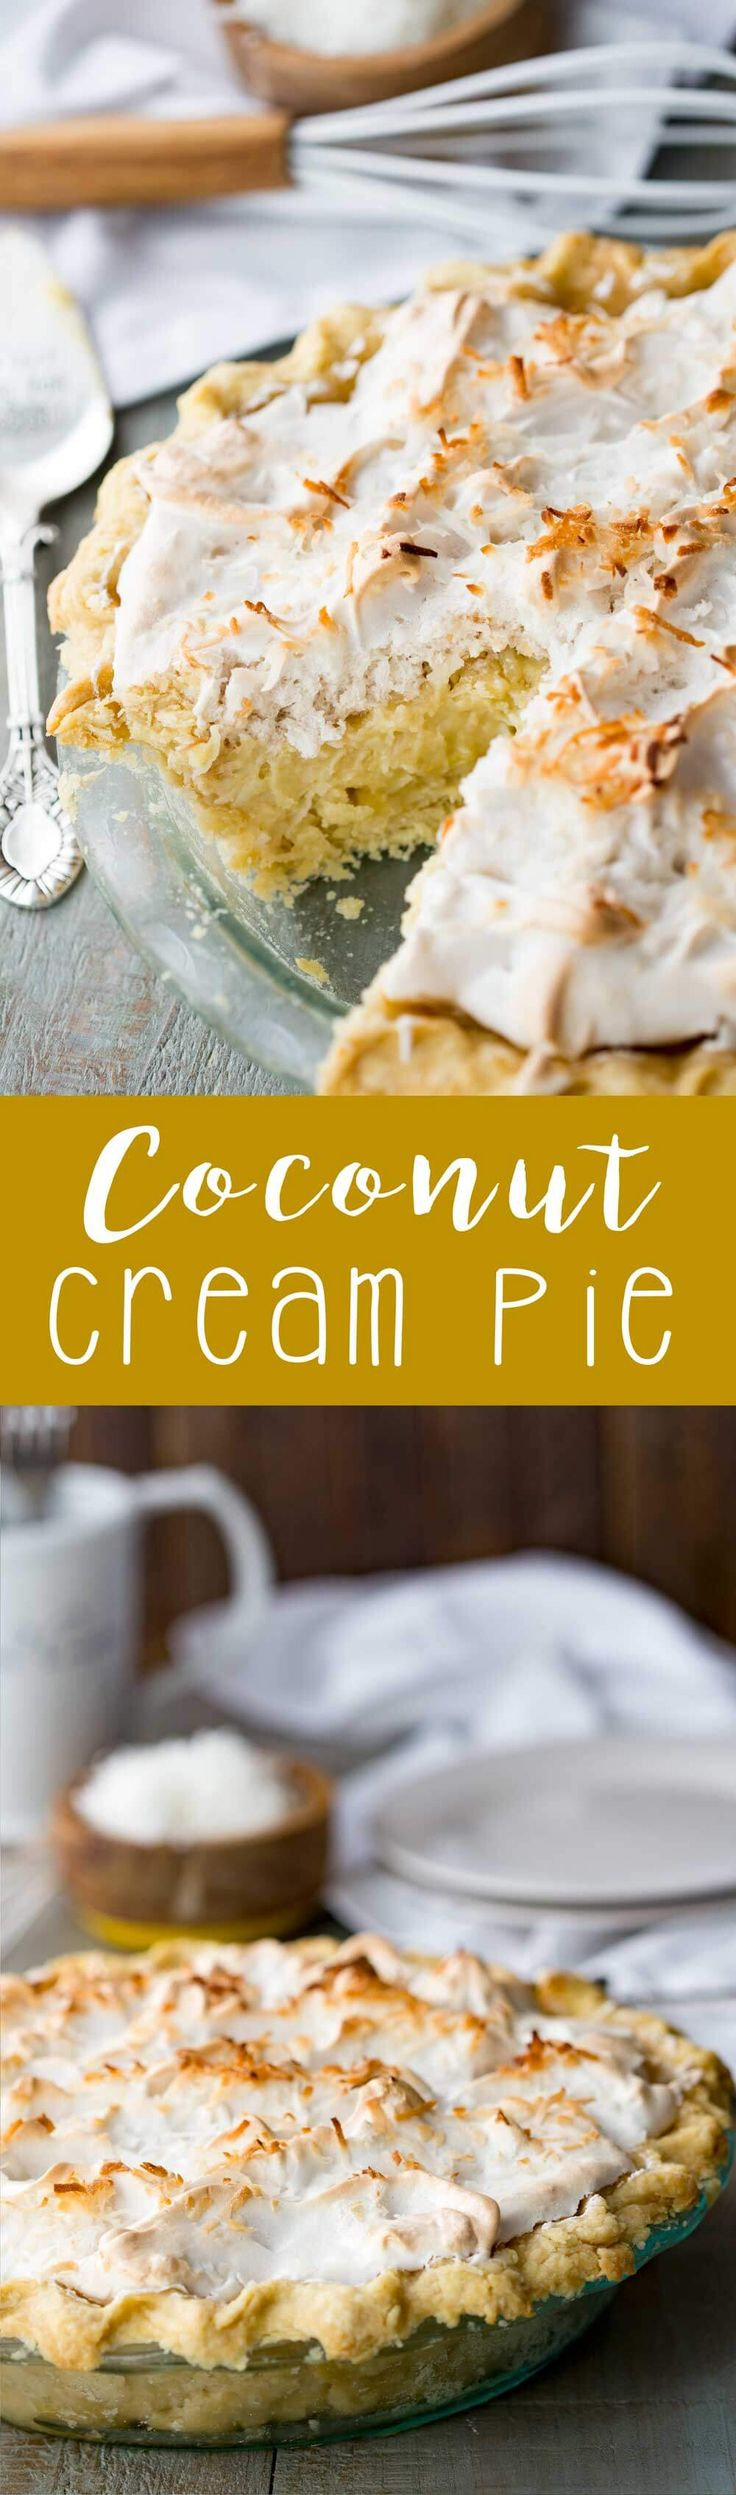 Thick, luscious coconut cream center in a butter pastry shell